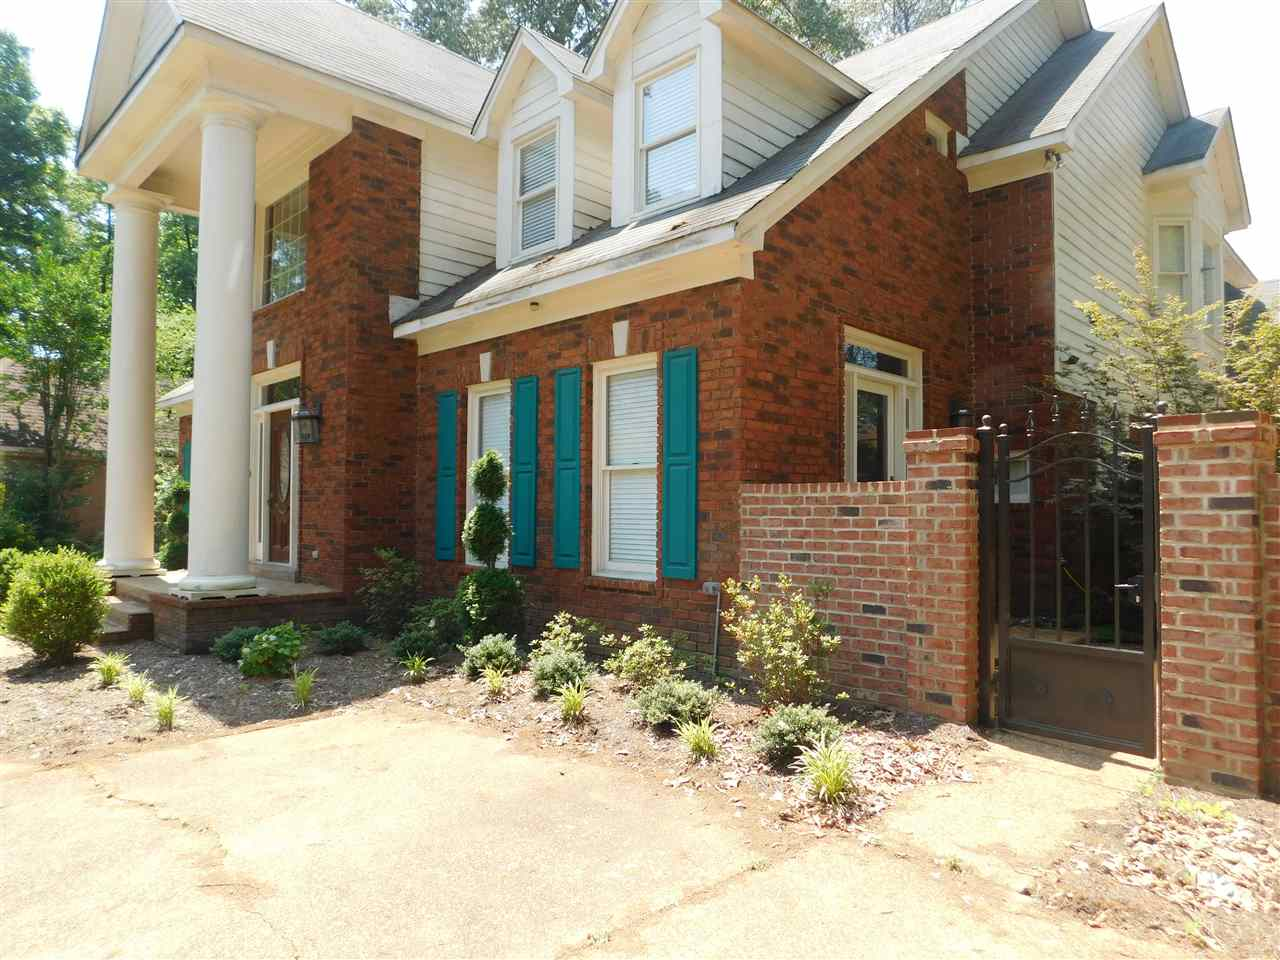 4382 Old Forest Memphis, TN 38125 - MLS #: 10027114